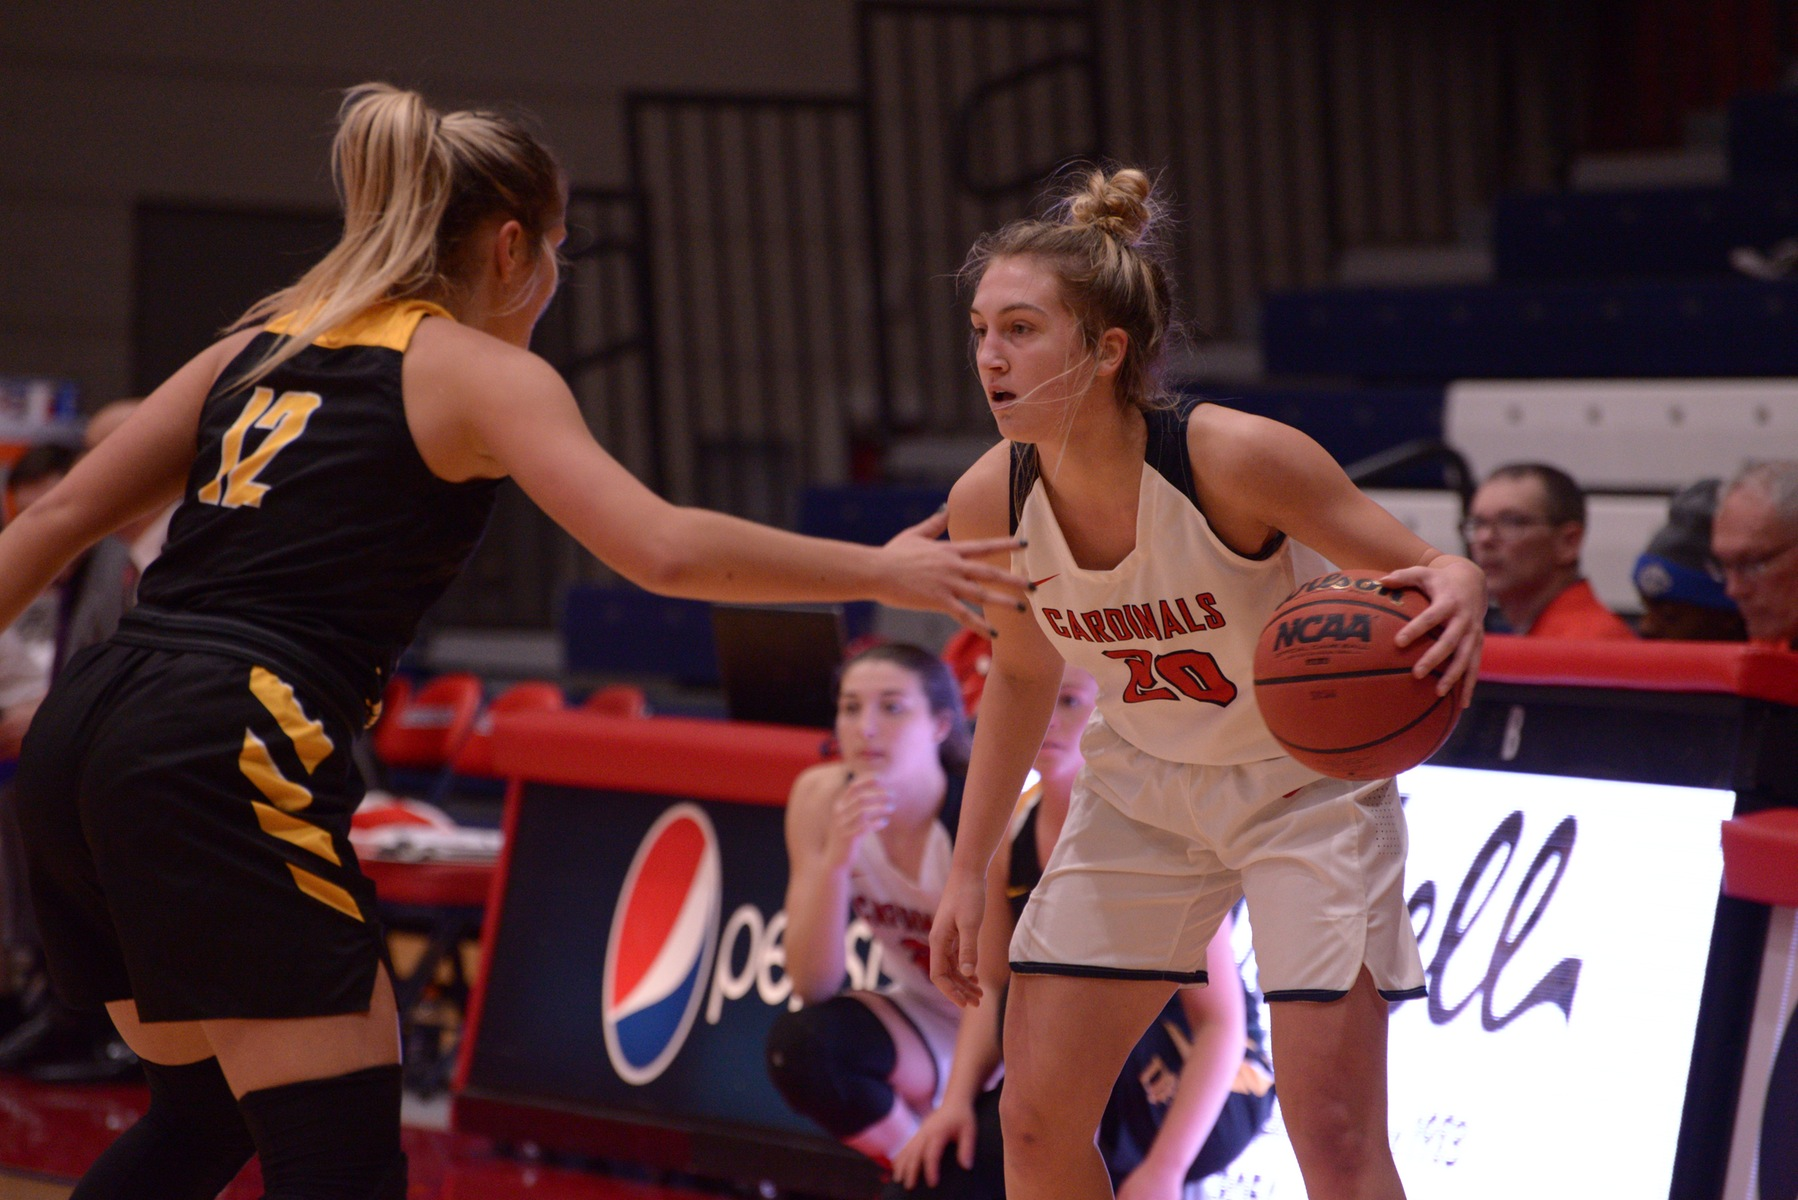 SVSU Women fall on the road at Ferris State, 72-44